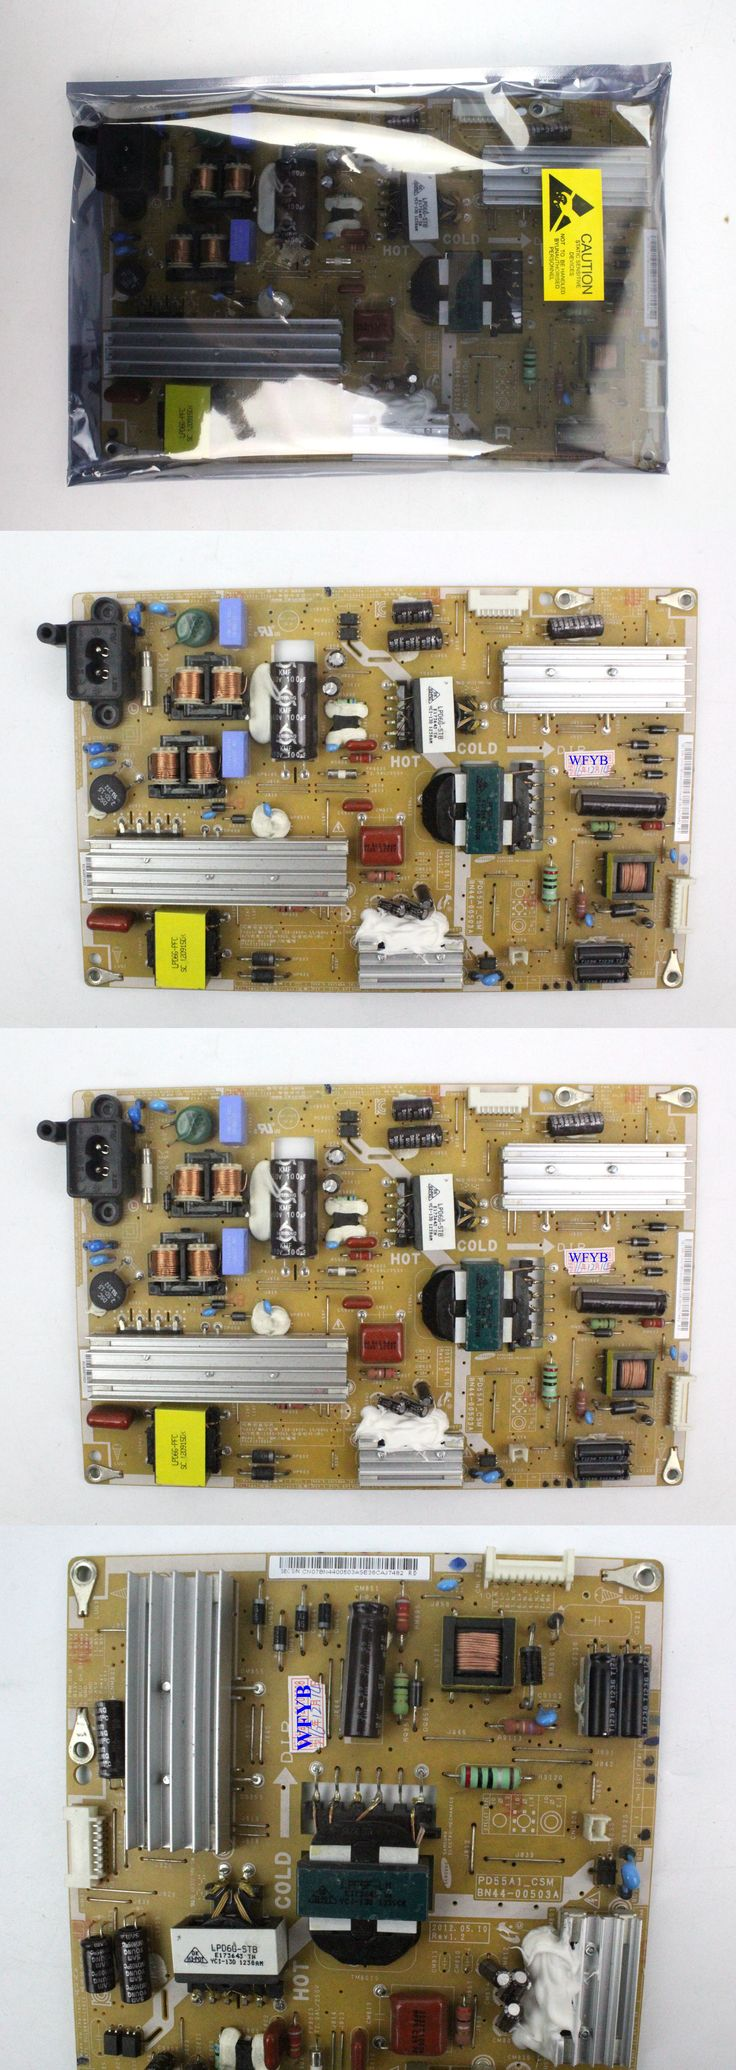 TV Boards Parts and Components: Us Bn44-00503A Power Supply Board Pslf121b04a Pd55a1_Csm For Samsung Tv -> BUY IT NOW ONLY: $69.99 on eBay!